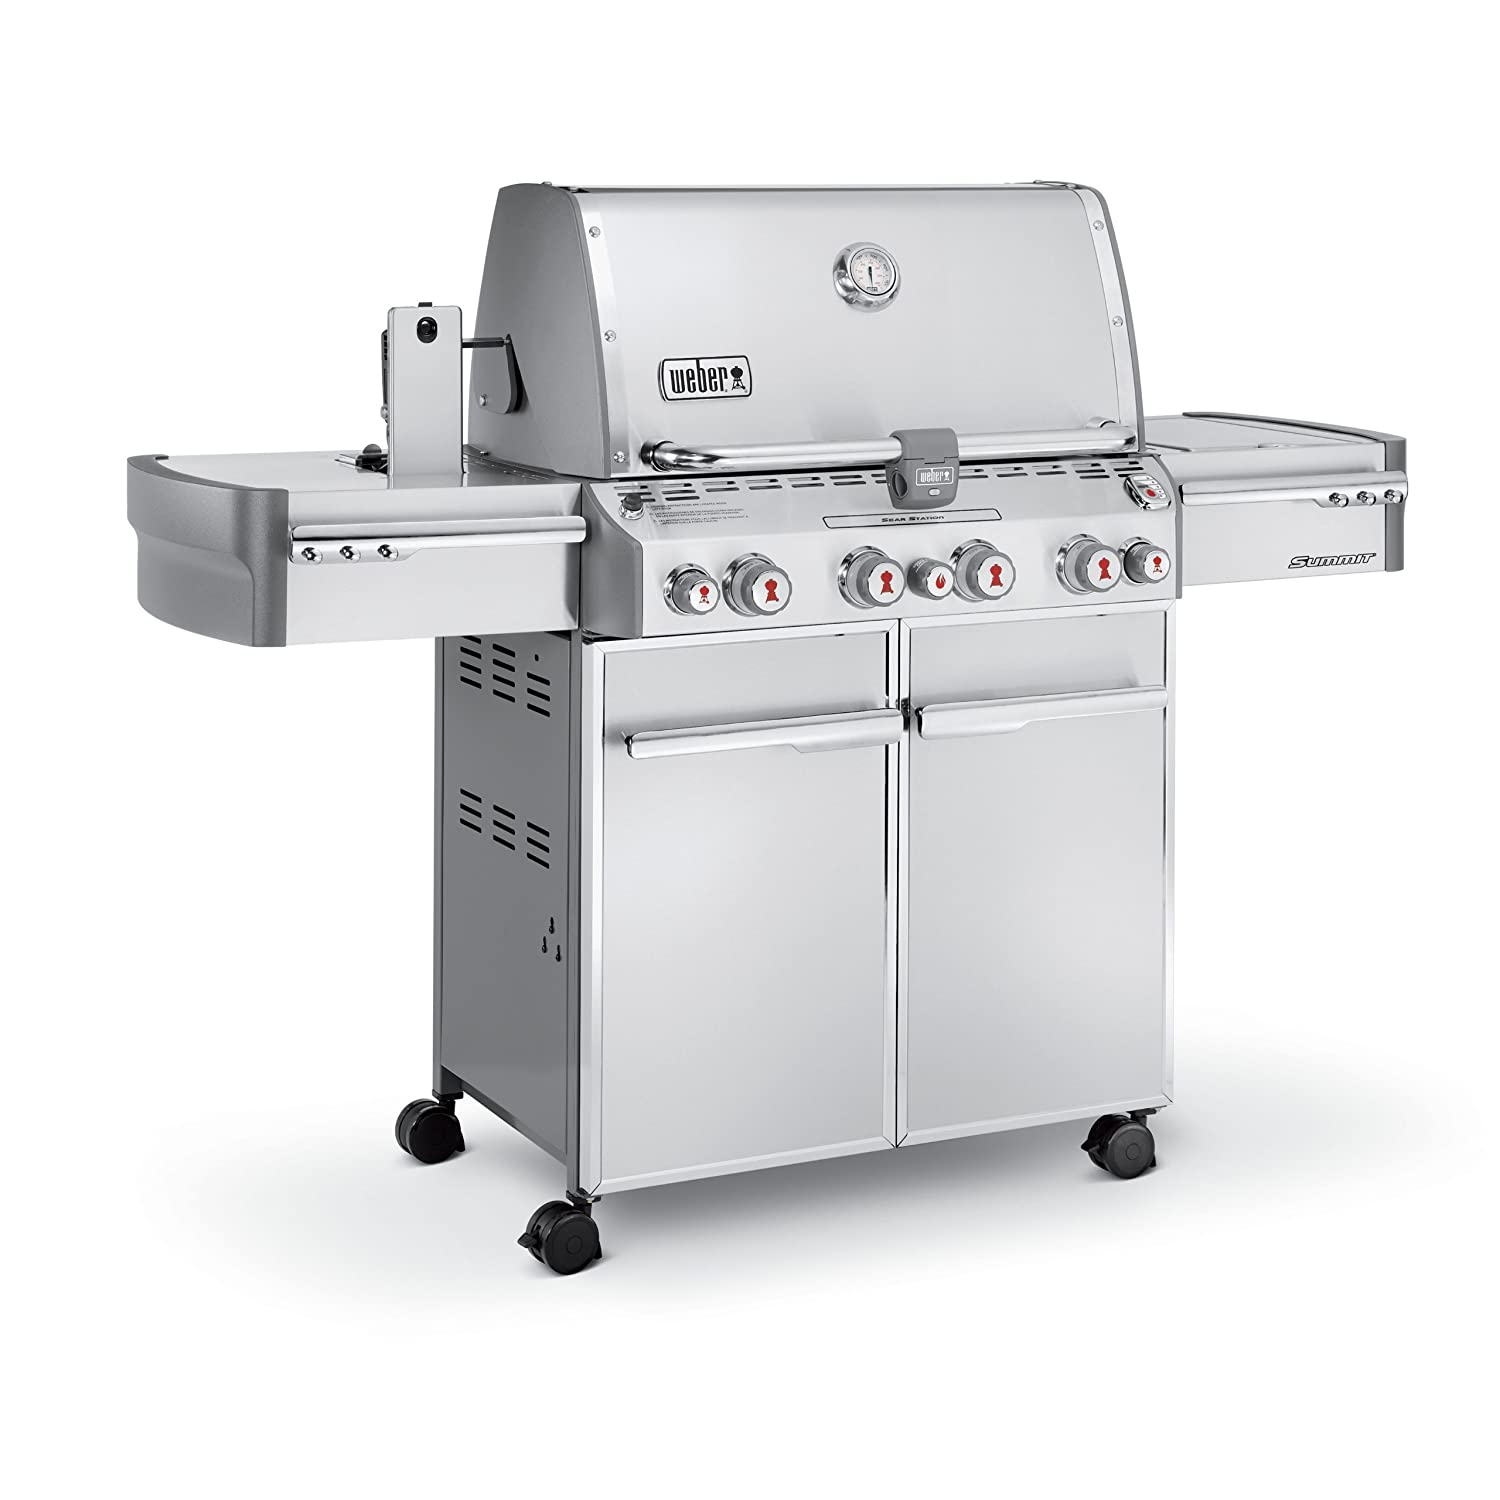 Green mountain grills, top-of-the-line wood pellet bbq grills and barbecue grill accessories. Premium barbecue smoker pellet grills make grilling easy.